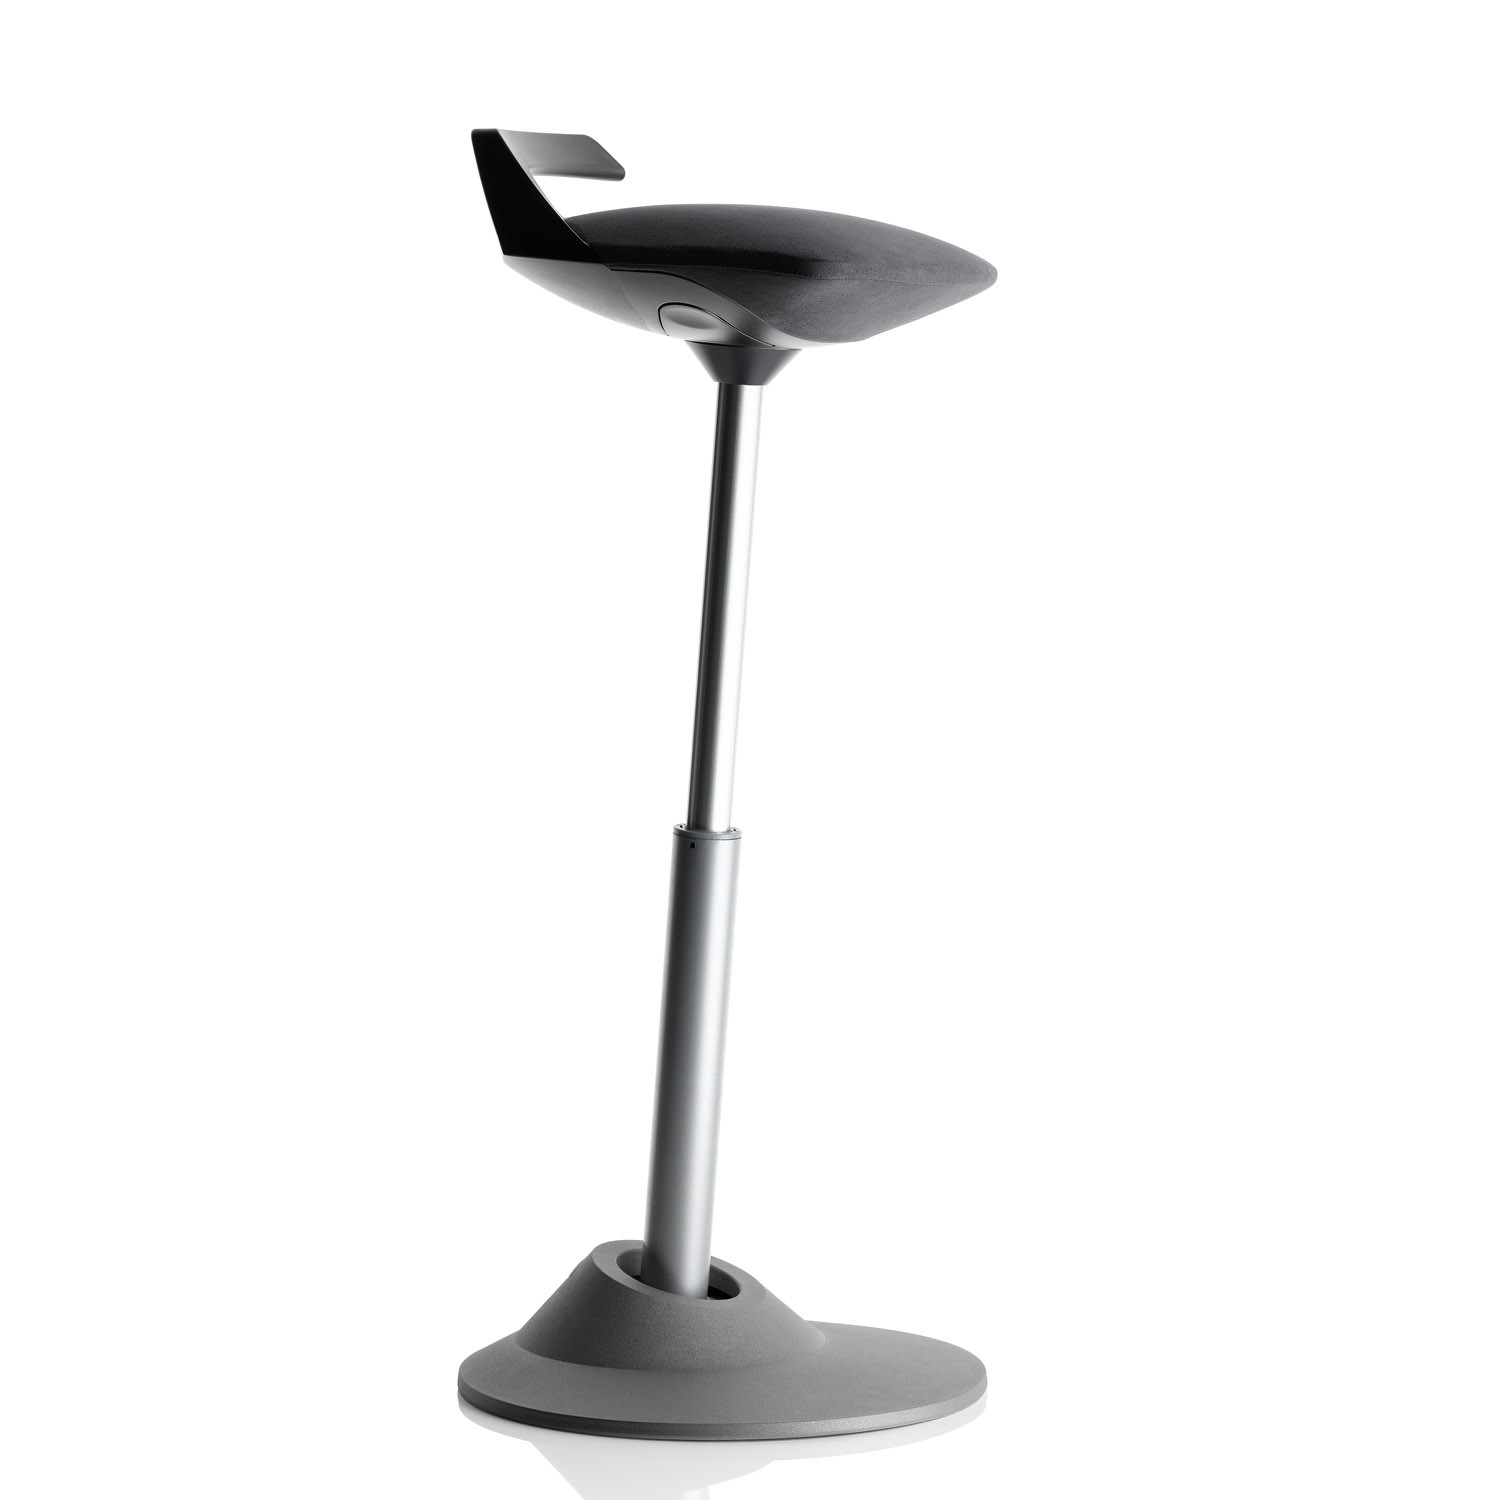 Muvman Height Adjustable Stool by Aeris